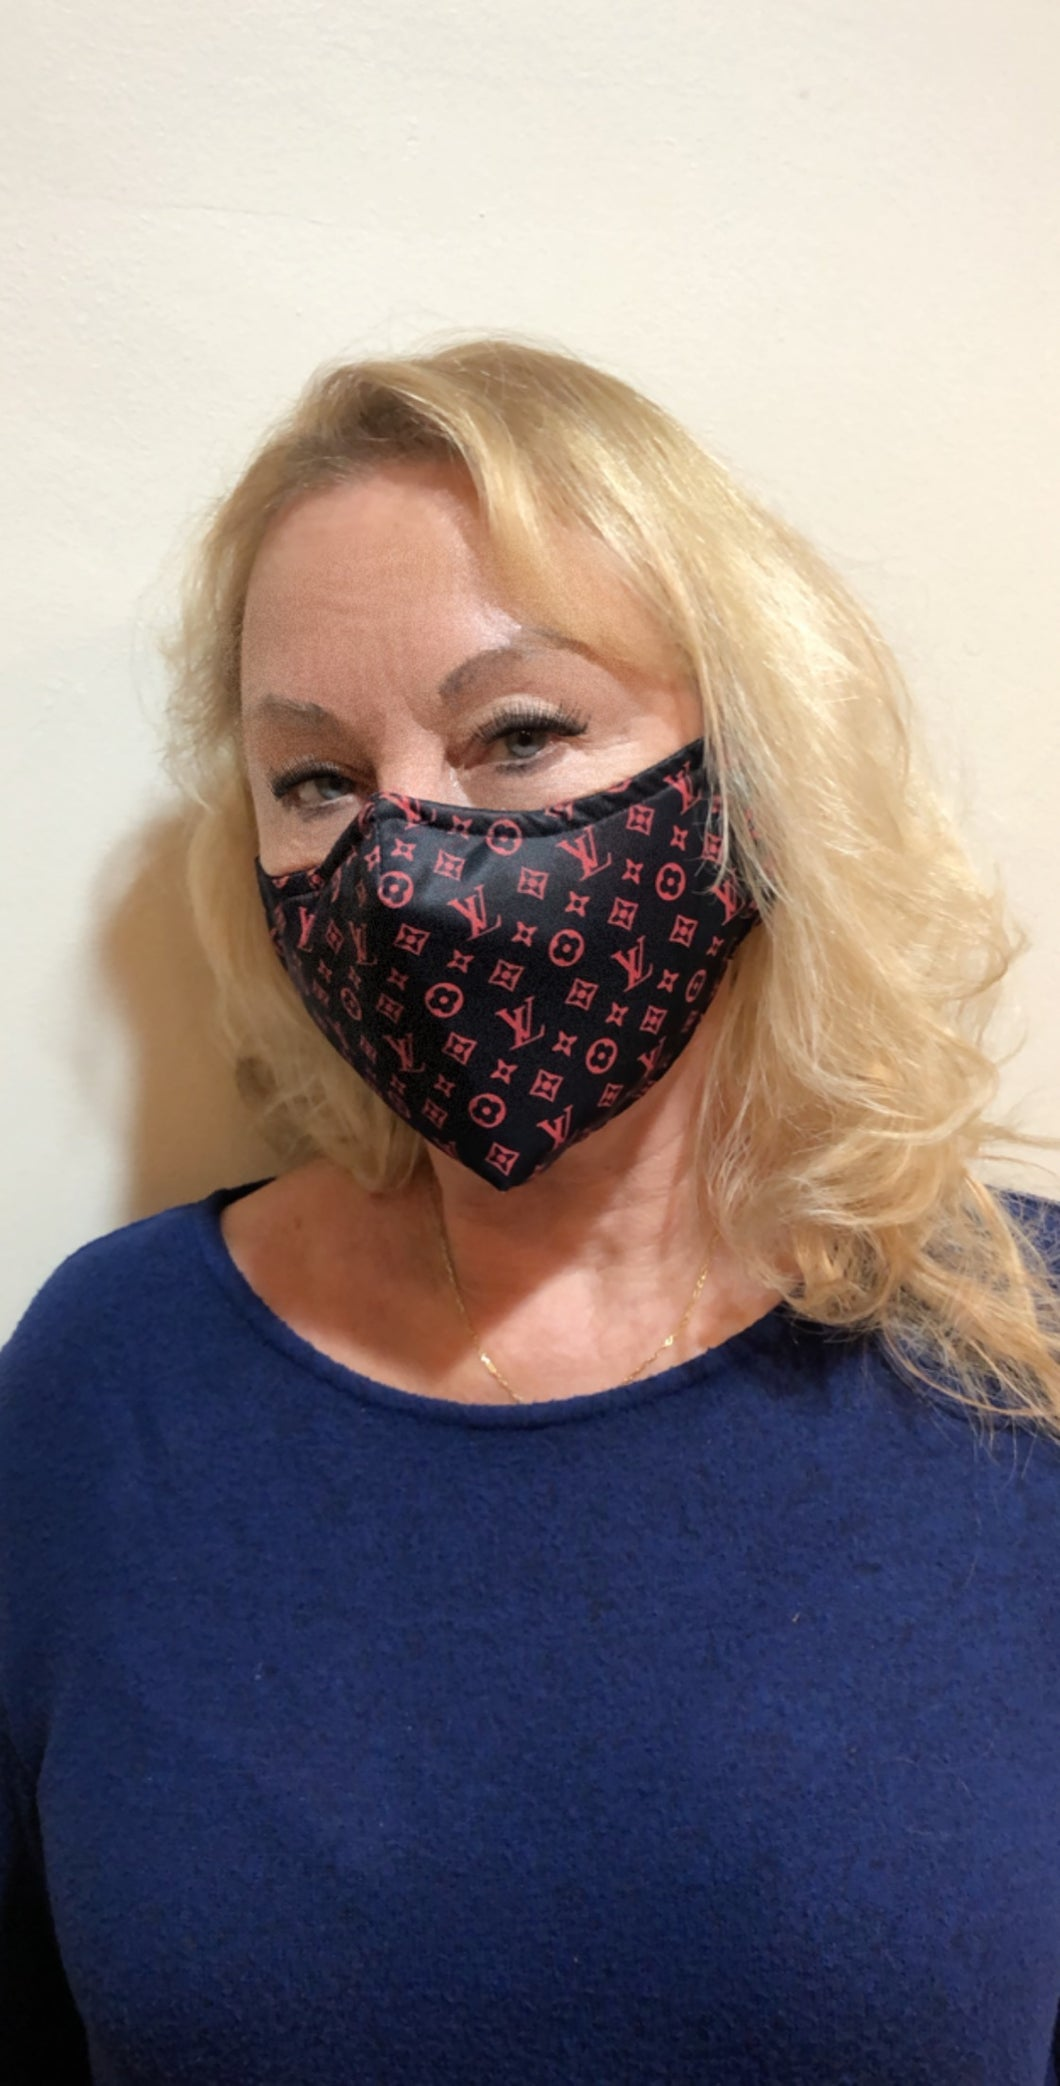 MLuxurious Face Mask - Unisex / Reusable / Washable